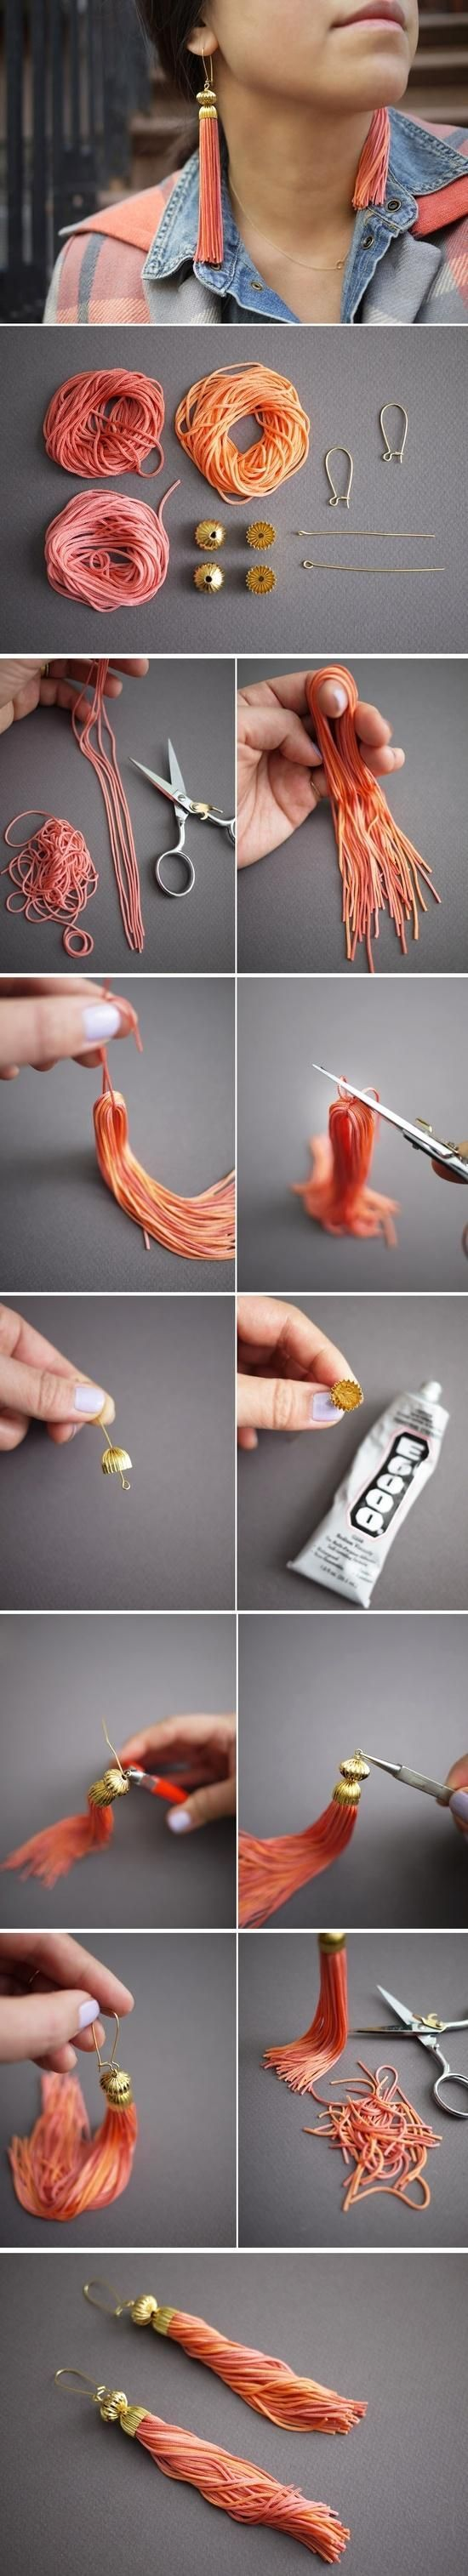 Janet Coumo DIY Tutorial: DIY Earrings Instructions:  Follow step-by-step instructions on indulgy.com Janet Coumo on Apr 6  DIY Earrings Ear...